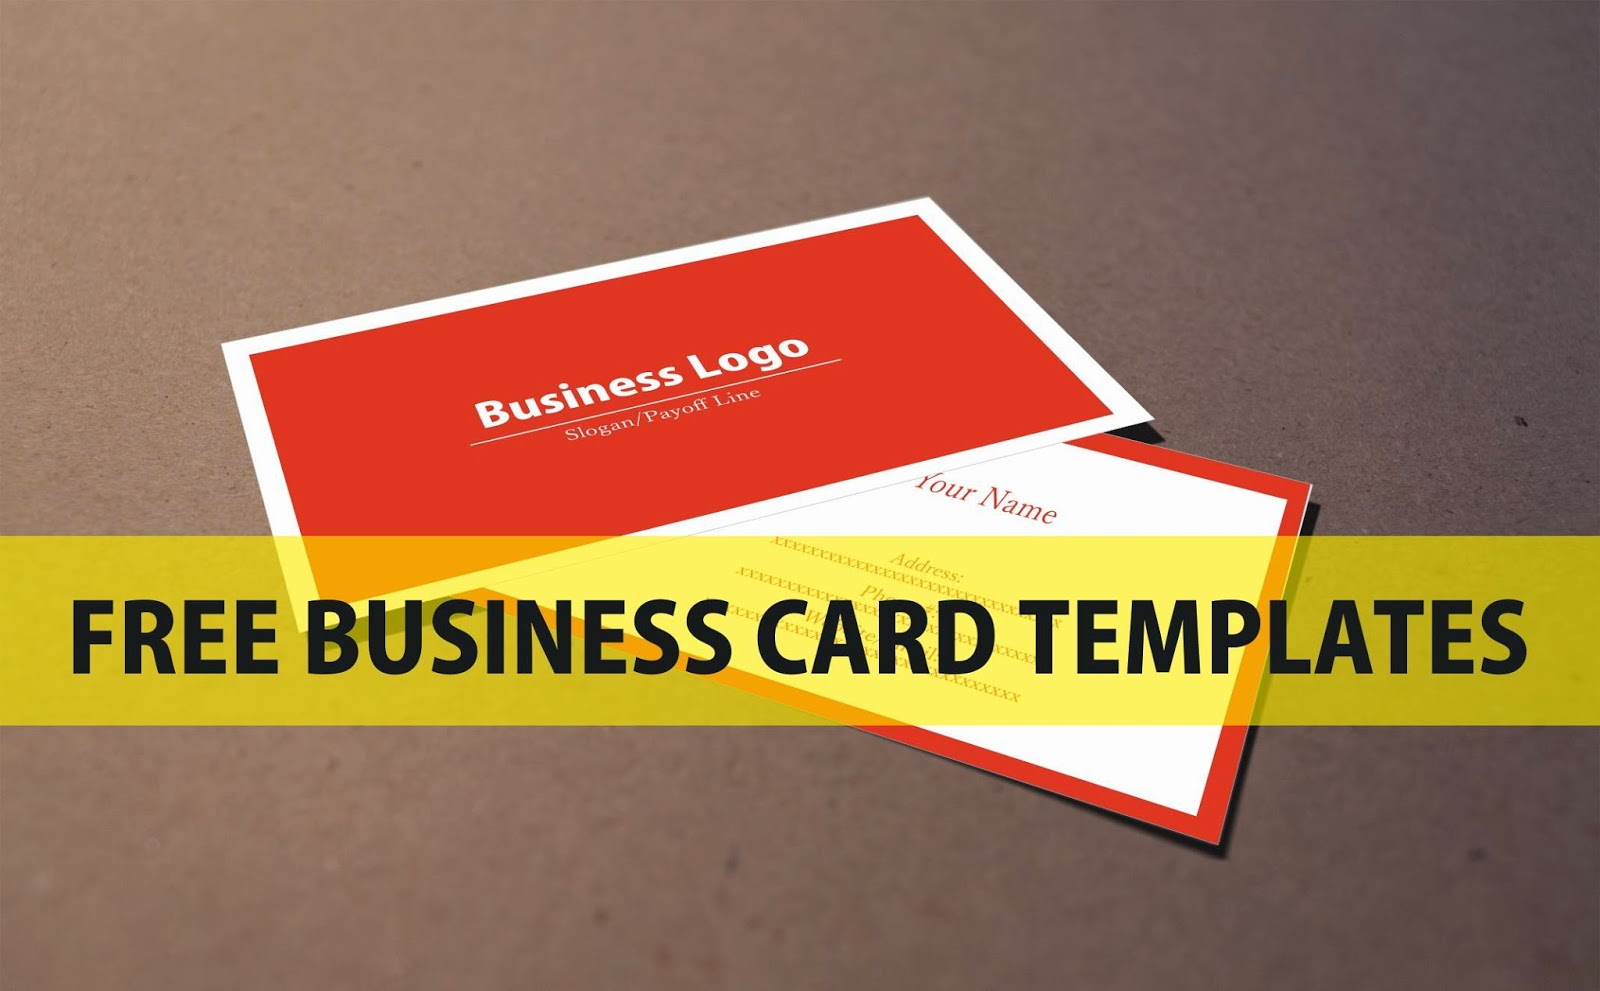 Free business card template freebusinesscardtemplatesg accmission Gallery